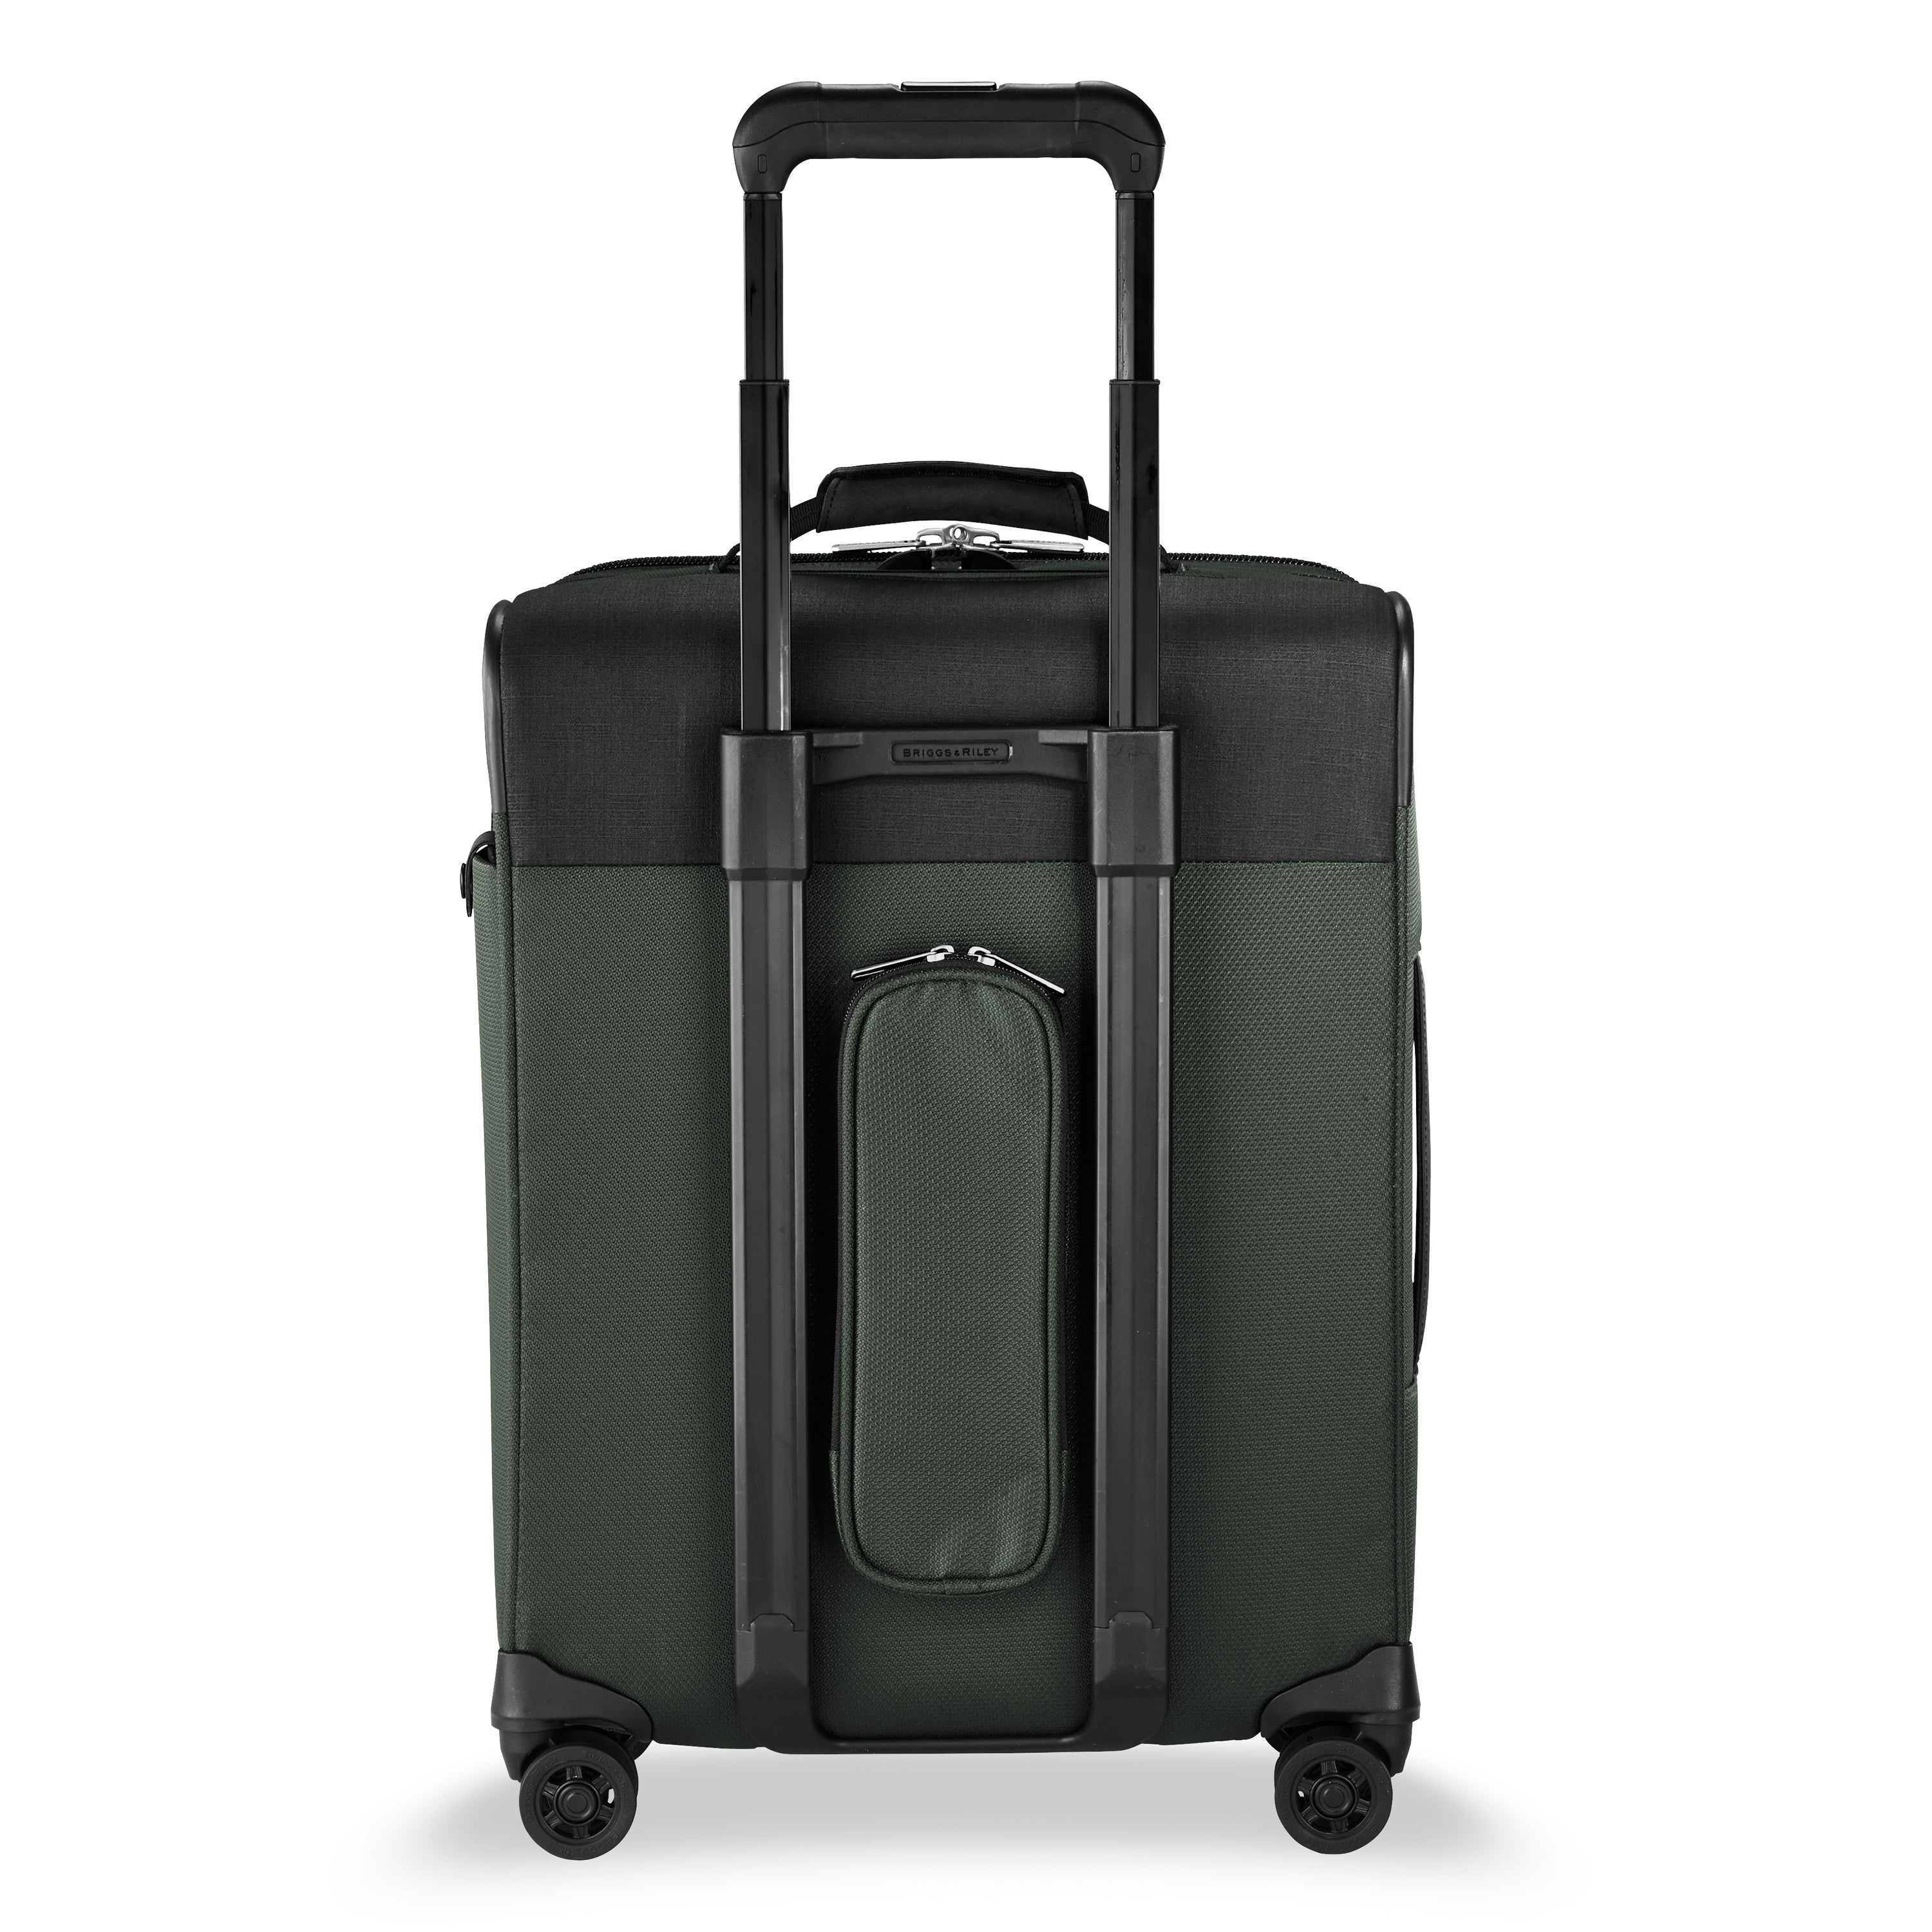 Briggs & Riley Transcend Wide Carry-On Expandable Spinner - Rainforest